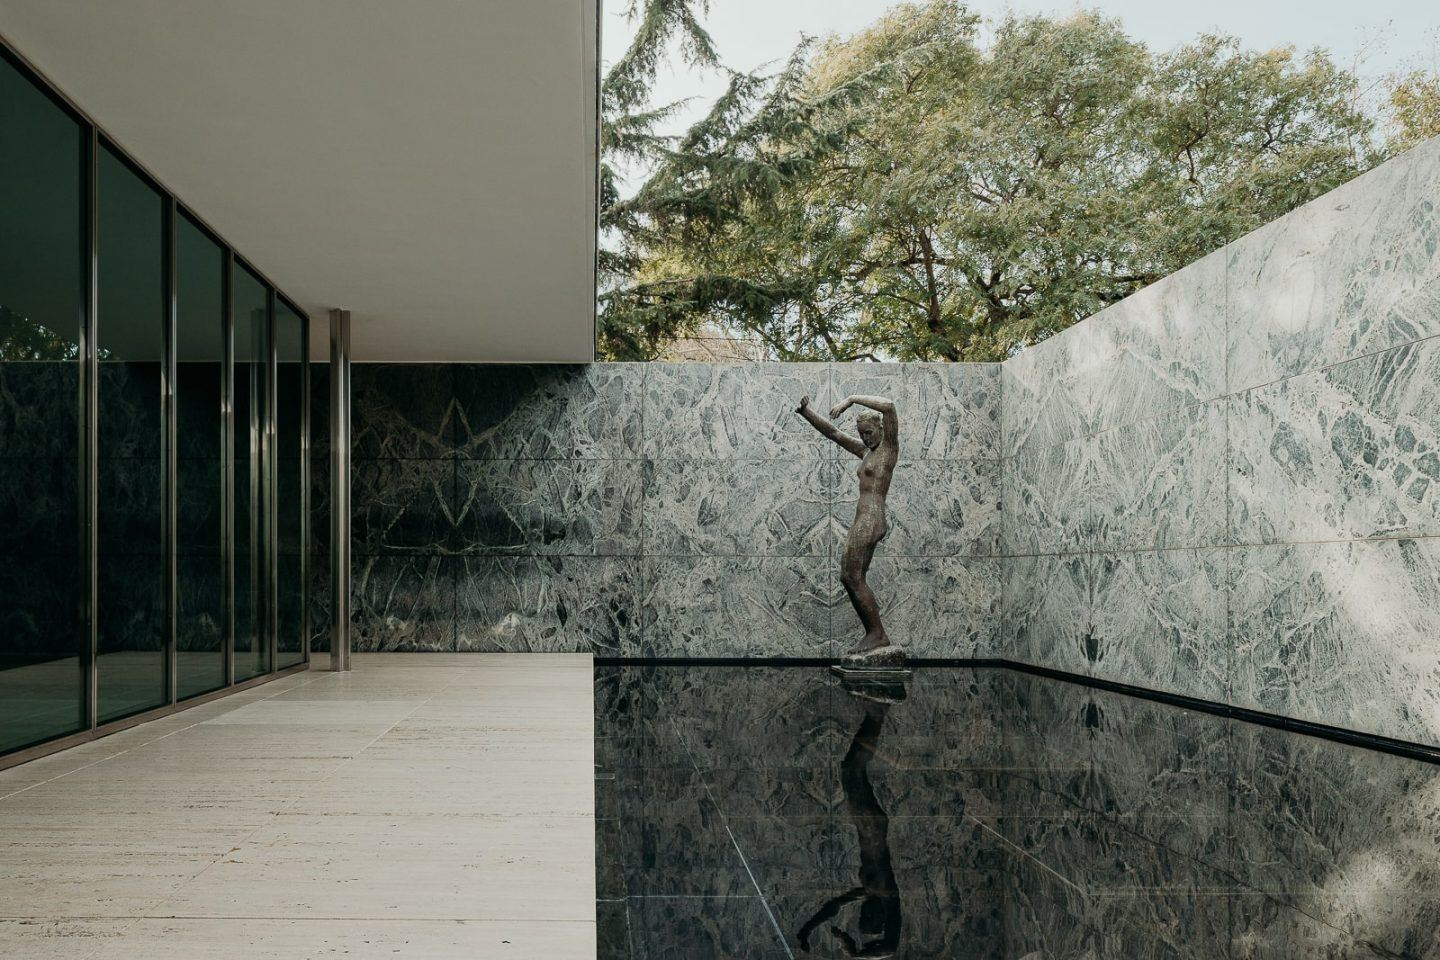 The Barcelona Pavilion By Ludwig Mies Van Der Rohe Is A Textural Delight - IGNANT